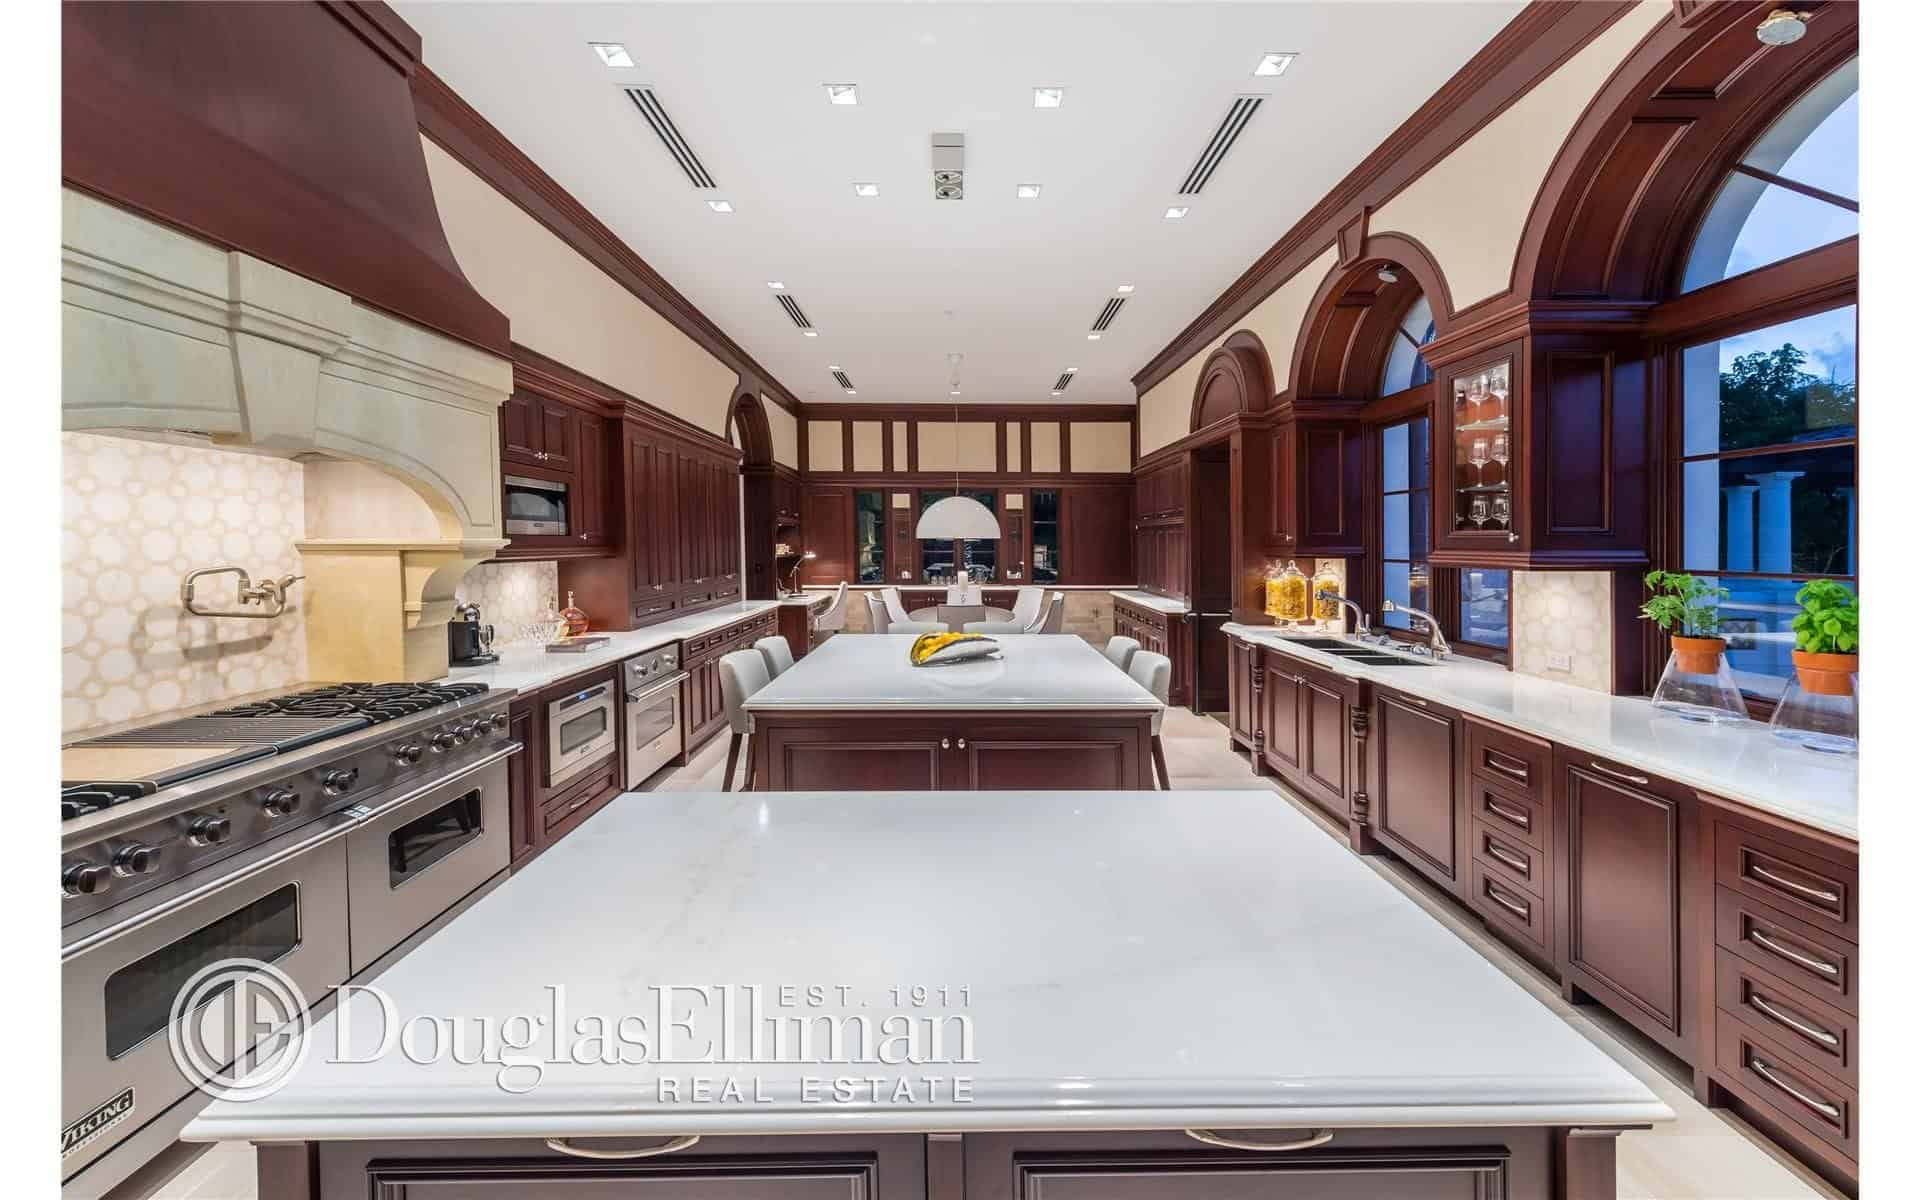 This large kitchen is dominated by the redwood shaker cabinets and drawers with silver steel handles matching with the stainless steel appliances embedded into the peninsulas lining the walls around the kitchen islands.